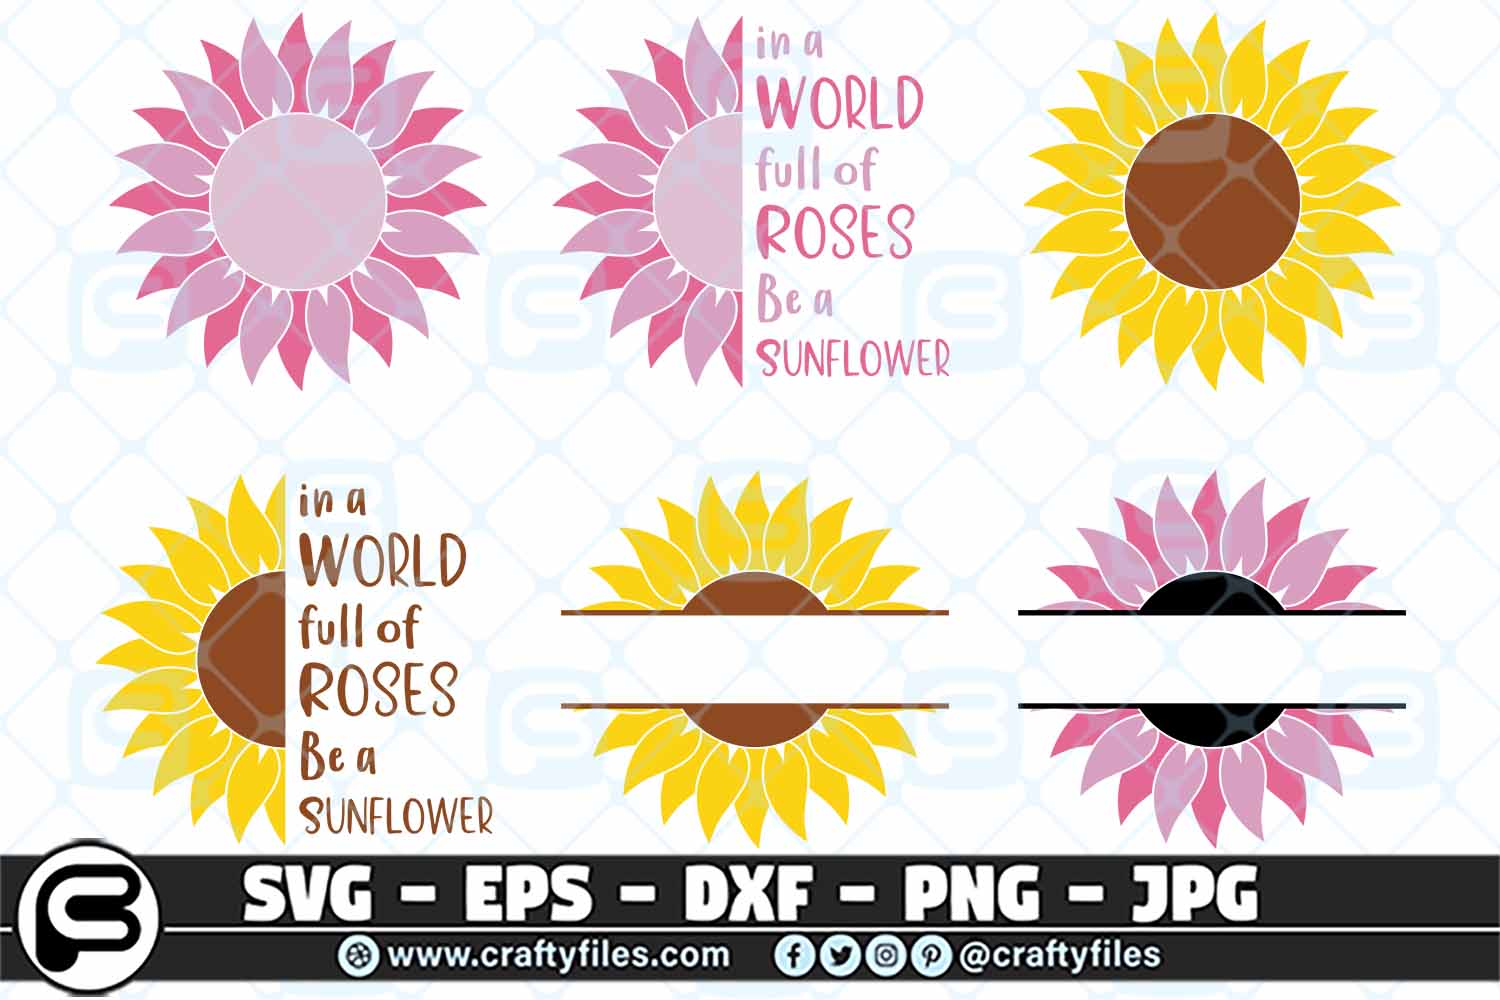 Download Free Sunflowers Bundles Graphic By Crafty Files Creative Fabrica for Cricut Explore, Silhouette and other cutting machines.